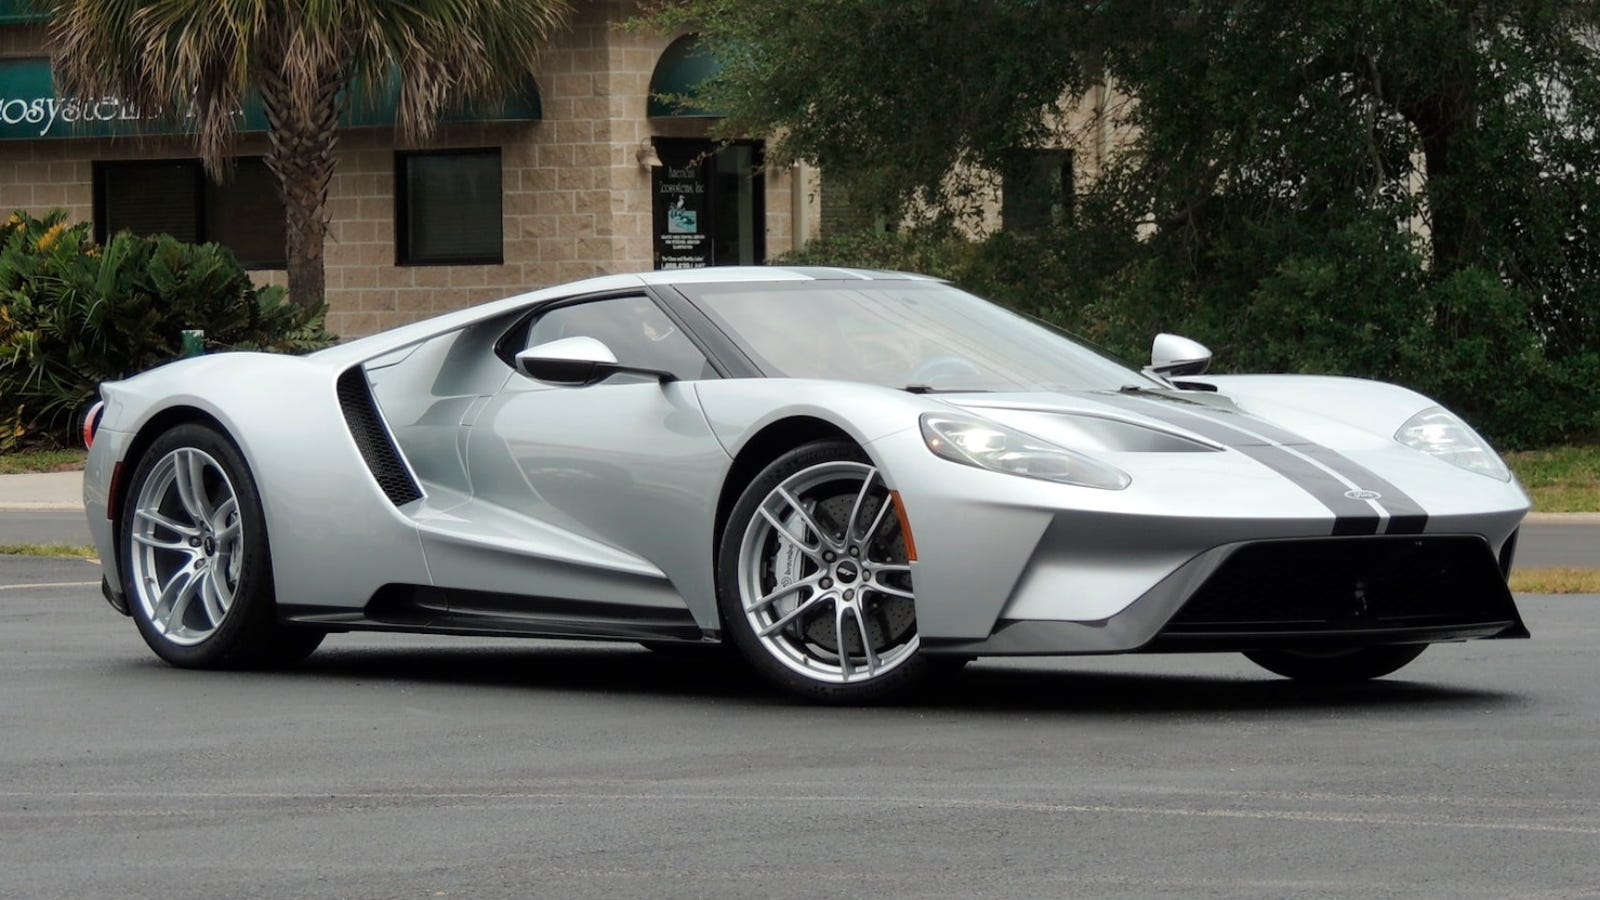 Mecum Auctions Mysterious 2017 Ford GT Sold For 1.65 Million Dollars